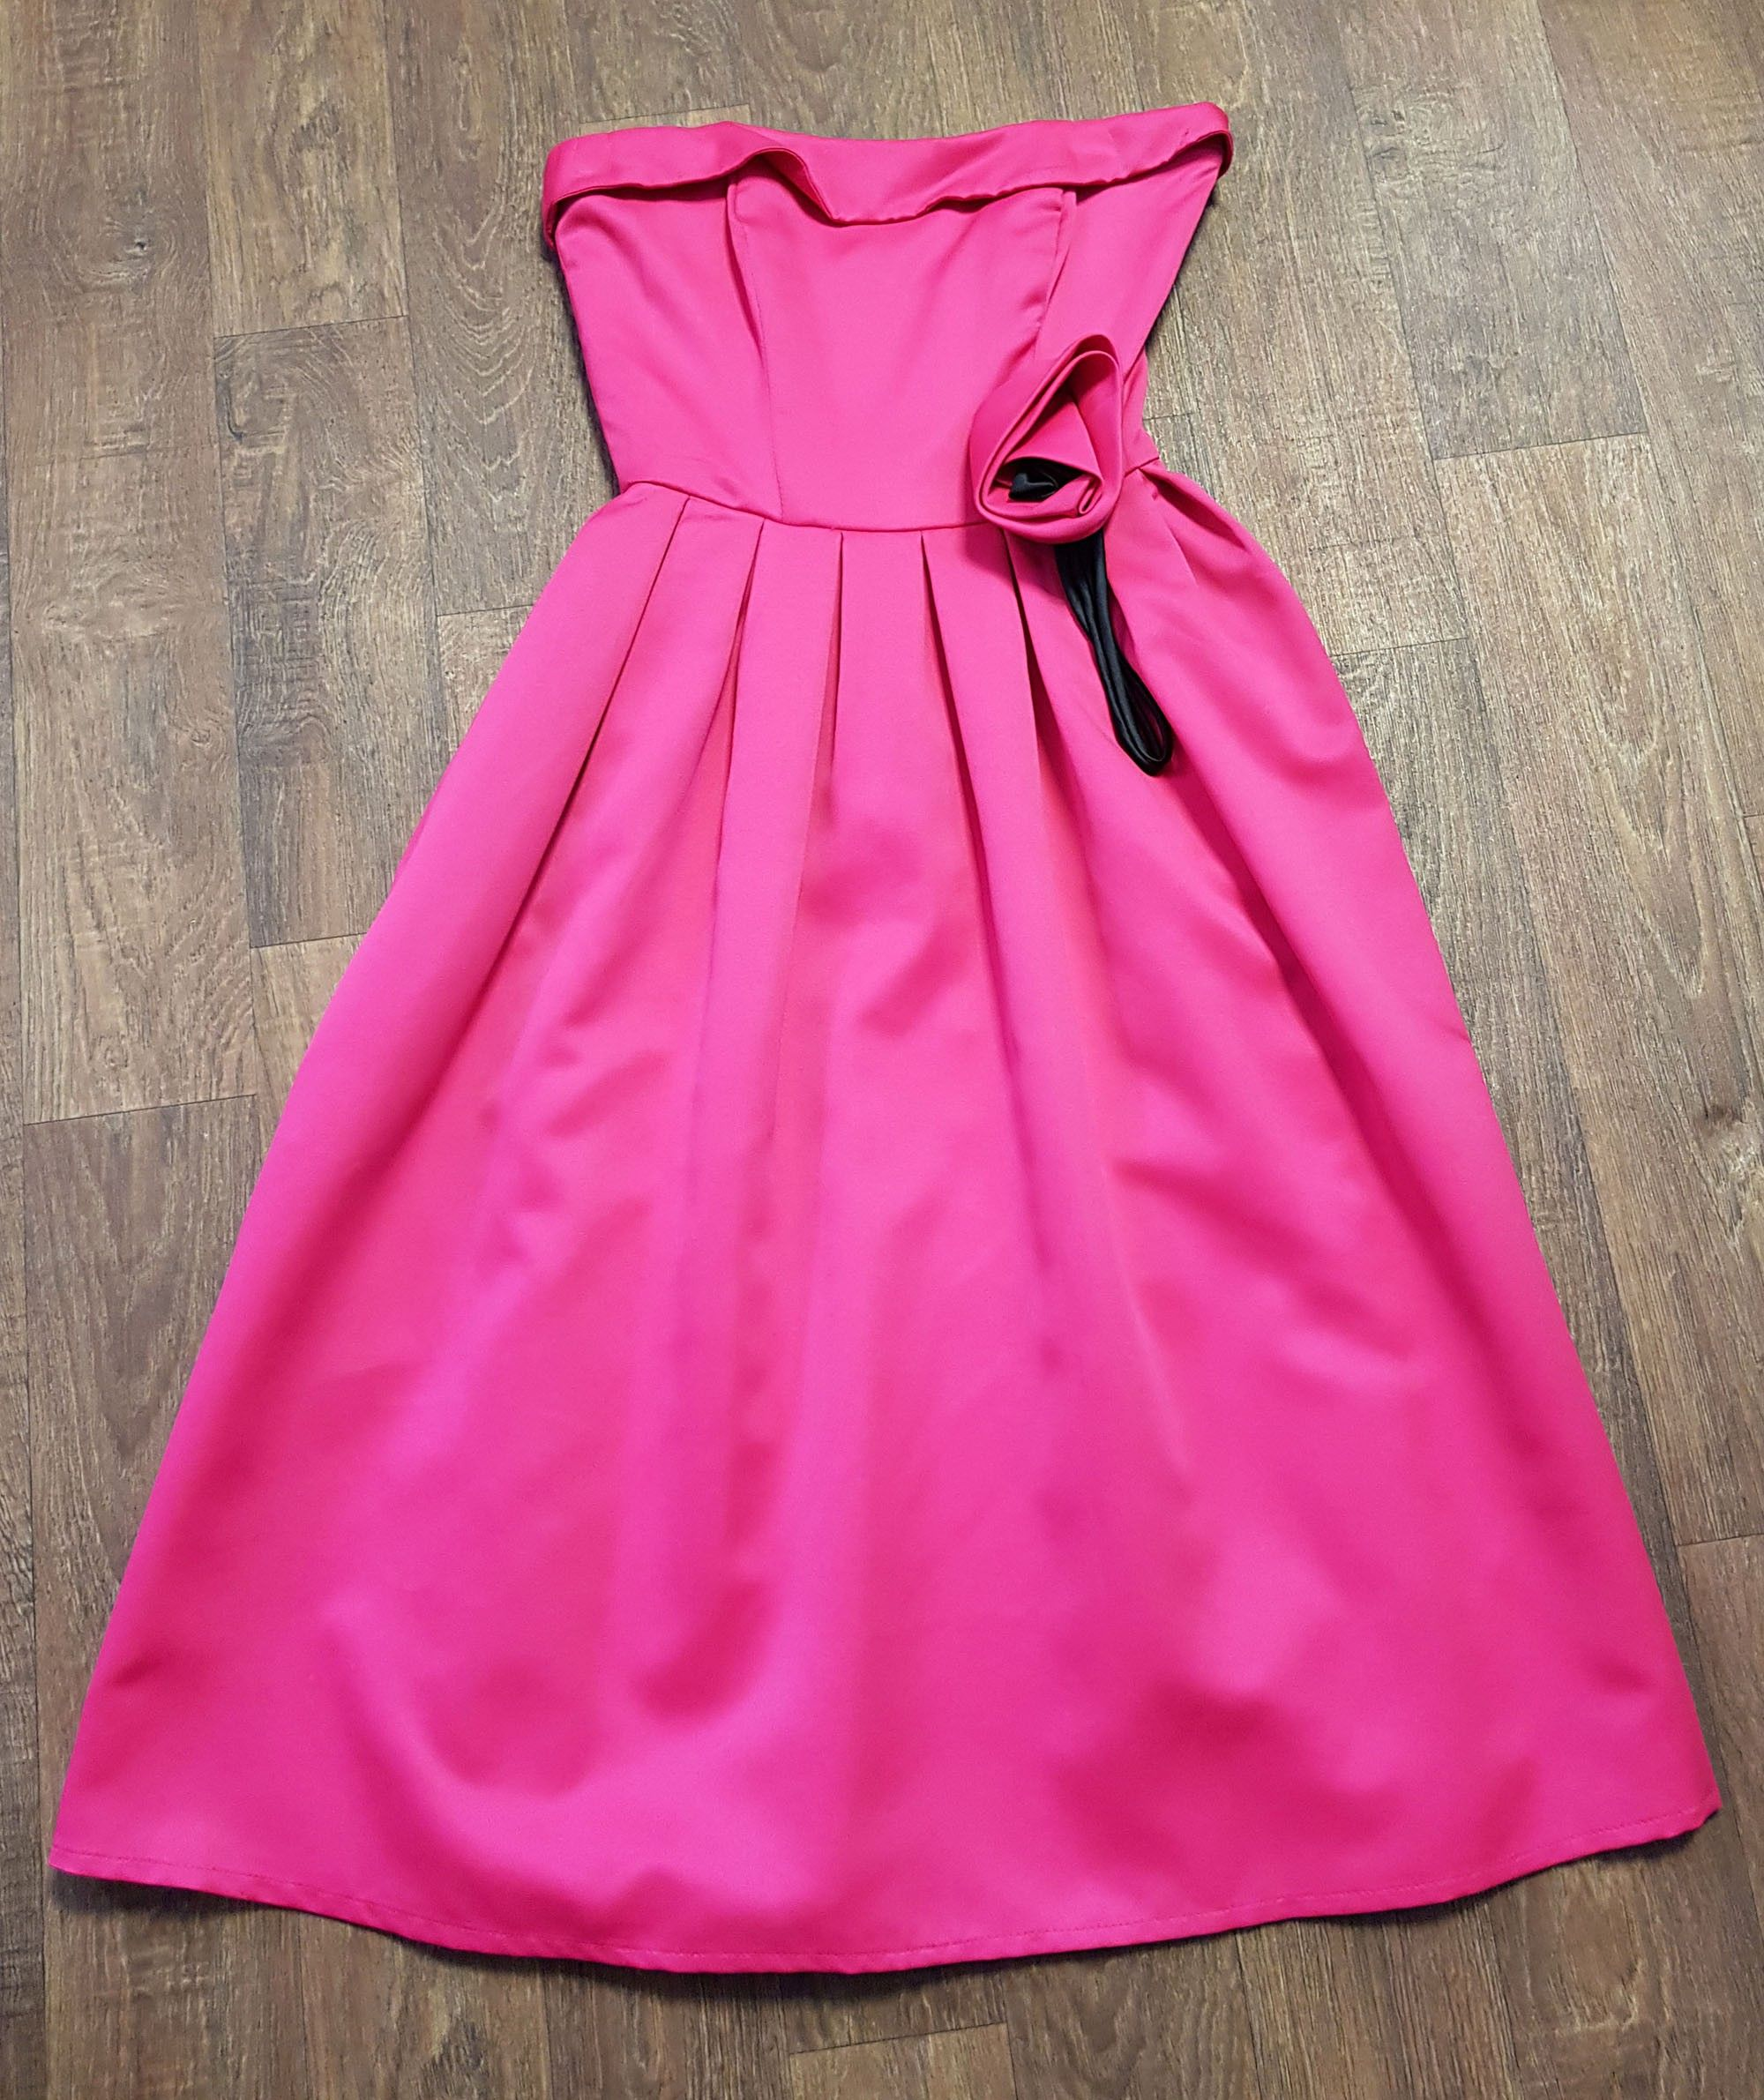 Vintage 1980s Bright Pink Corsage Prom Dress UK Size 8